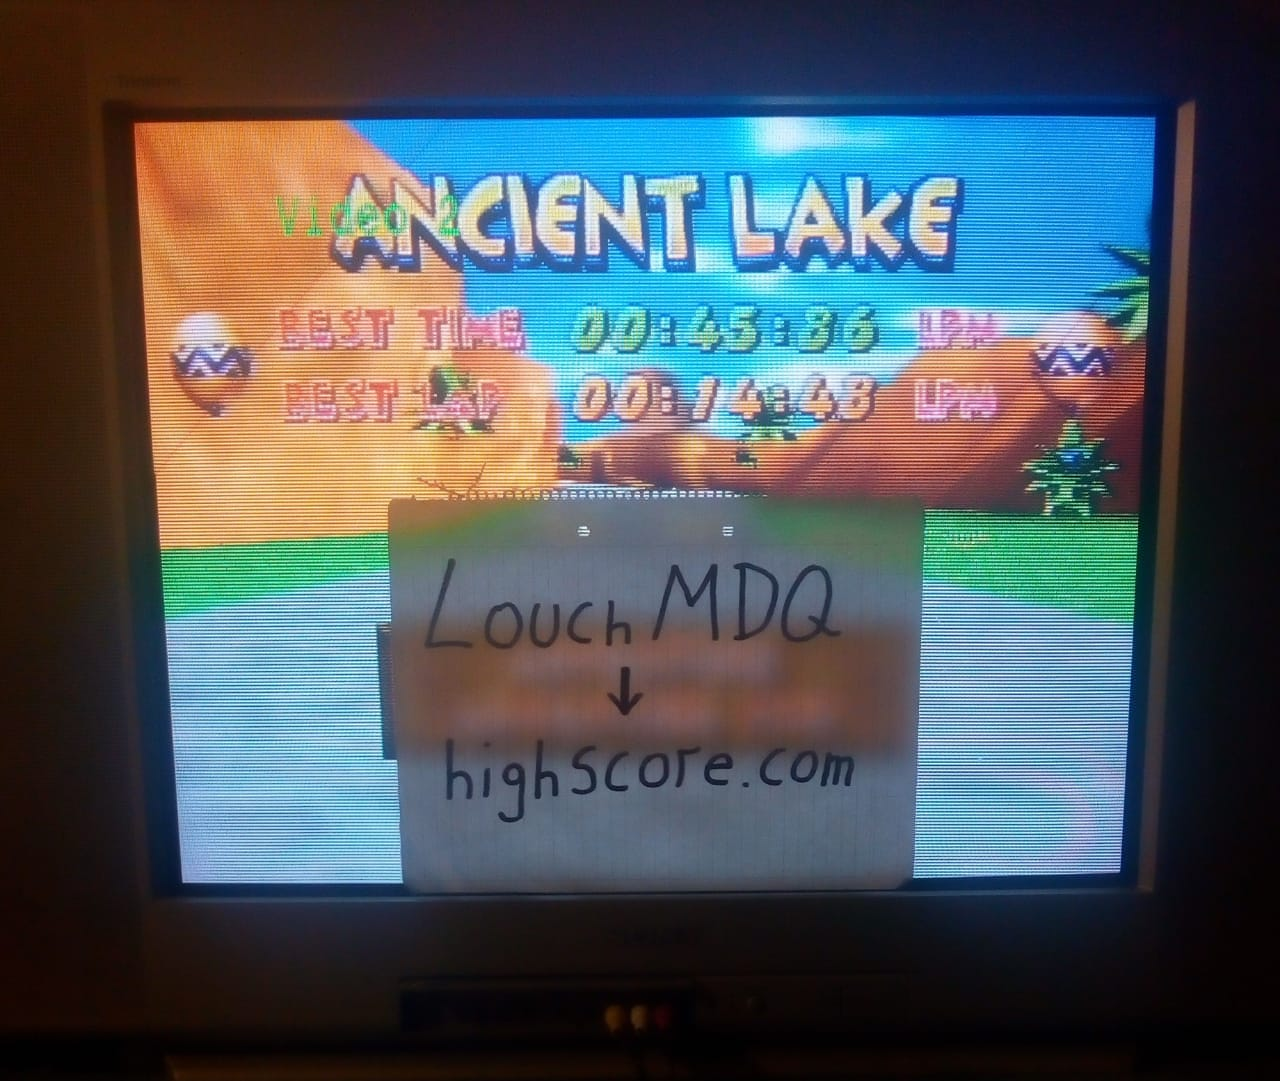 Diddy Kong Racing: Tracks [Ancient Lake] time of 0:00:45.86